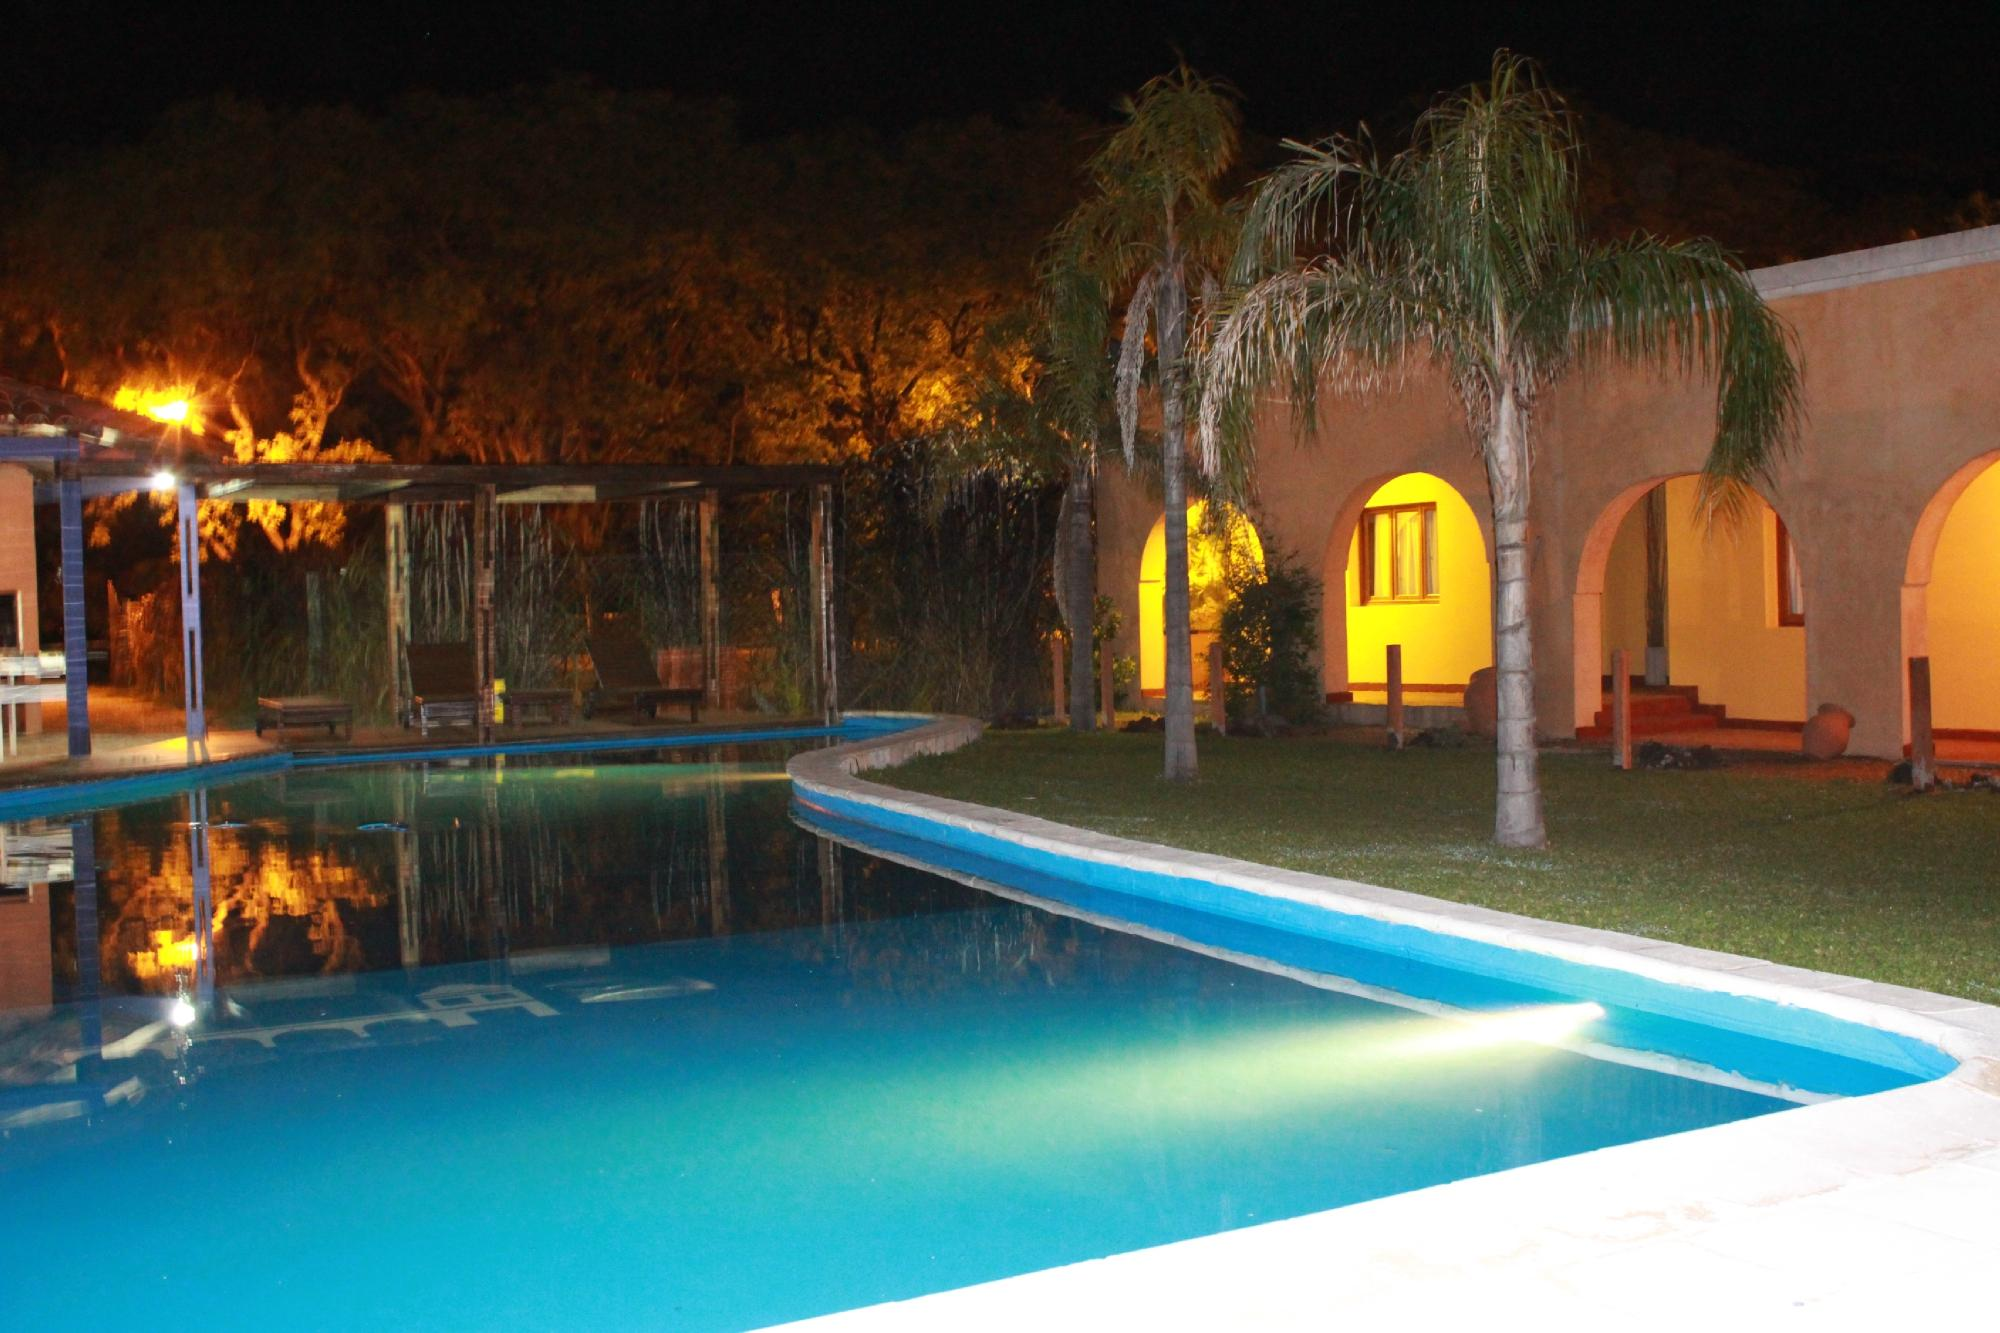 Hacienda Don Justo Hotel Spa